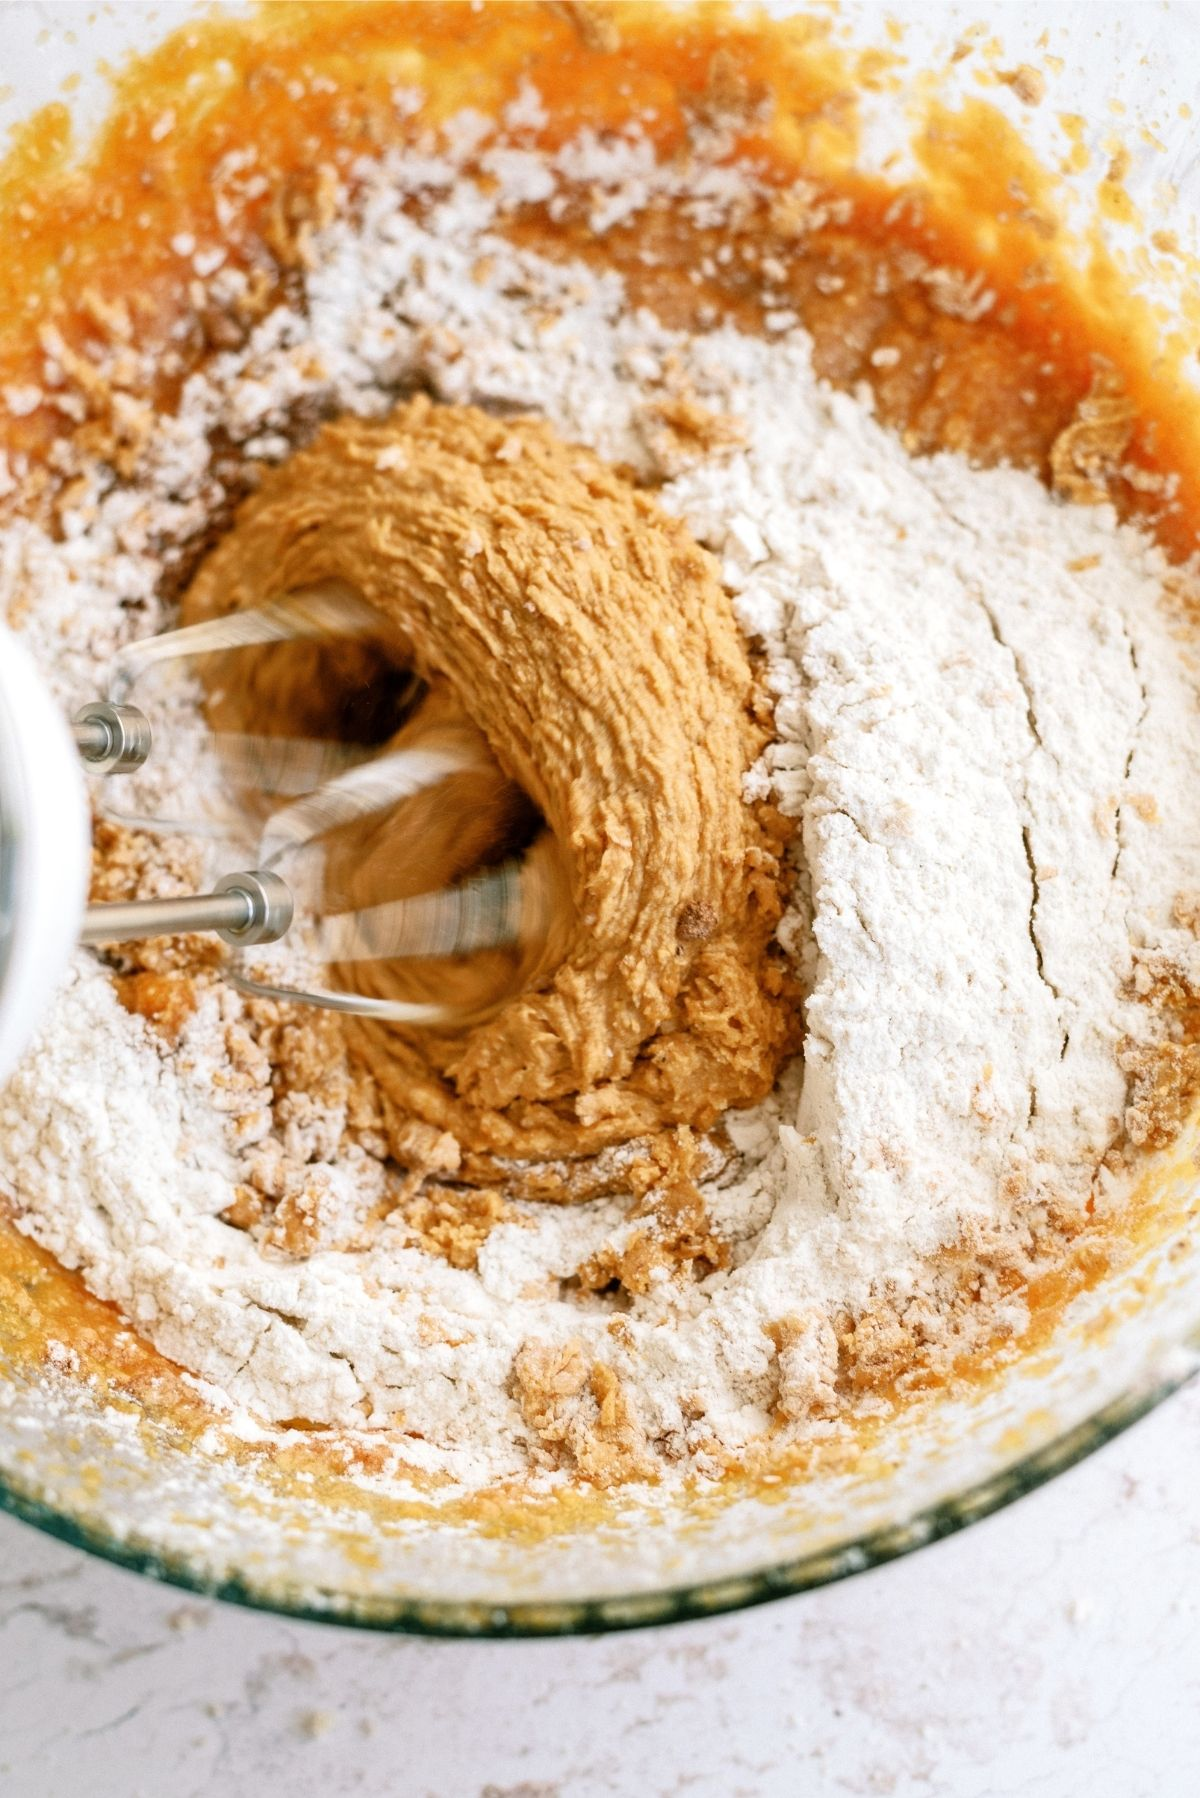 Dry ingredients added to wet ingredients and mixed with a hand mixer in a glass bowl